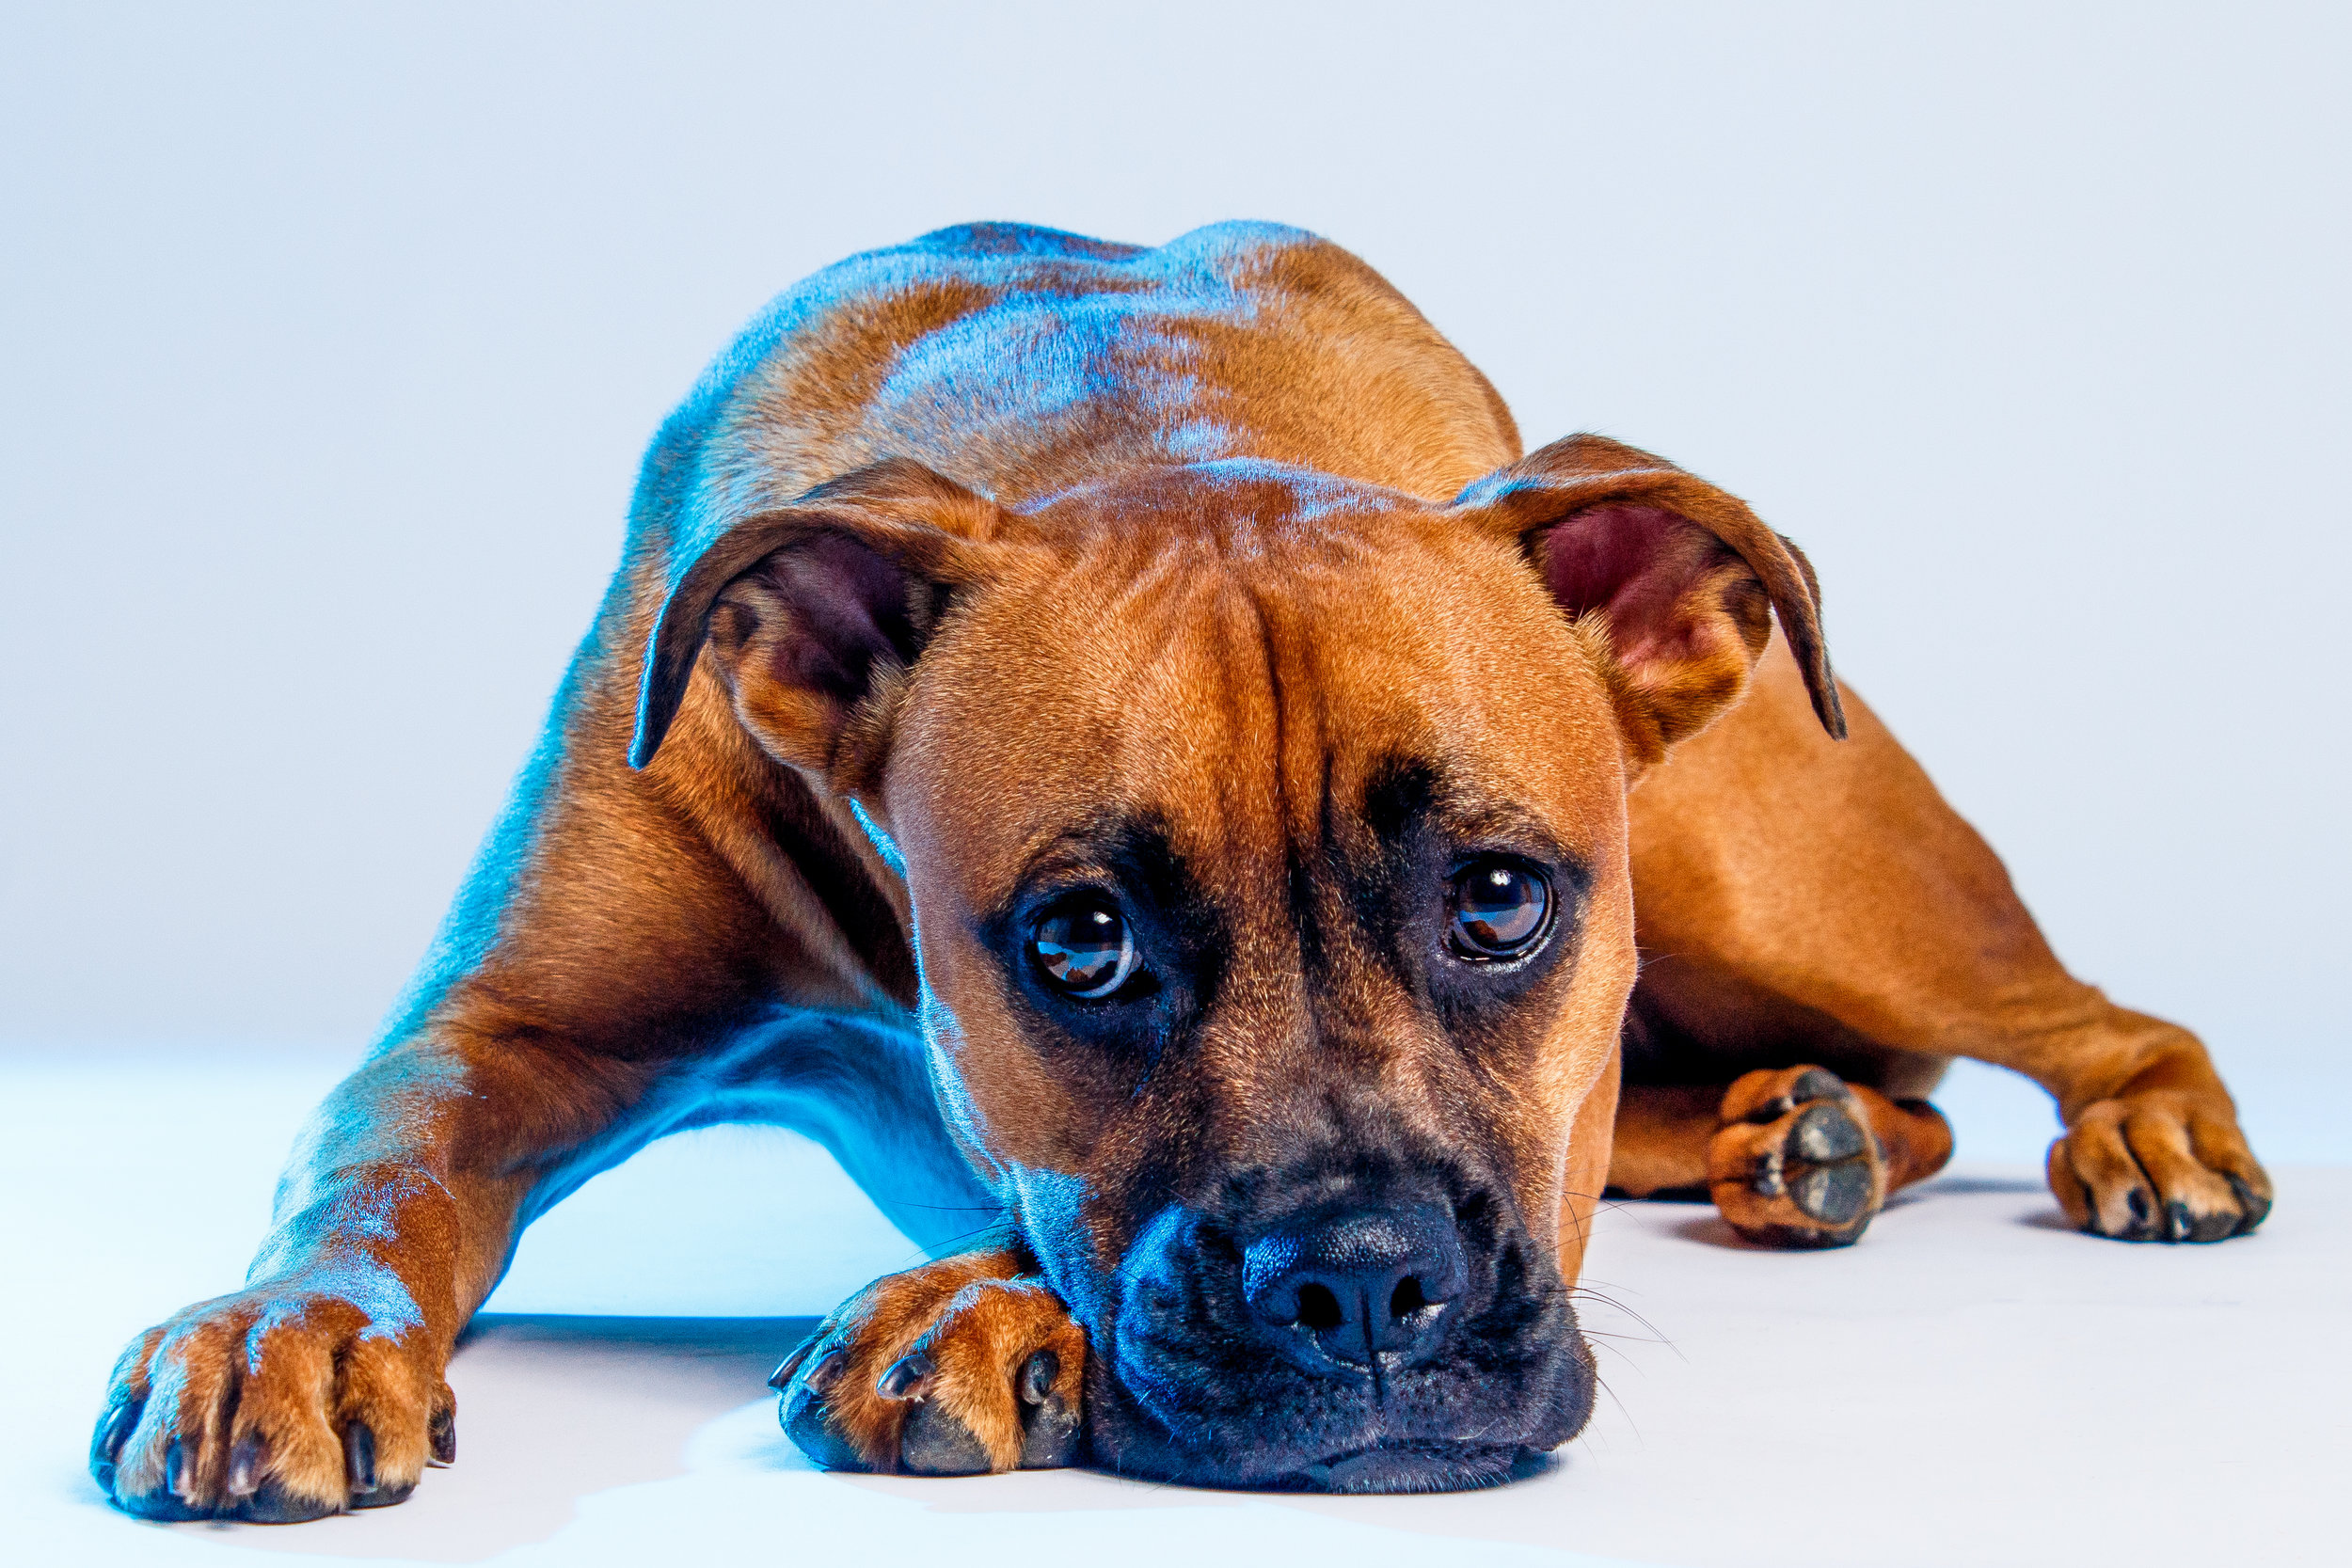 Image of a Boxer In Studio with Blue Coloured Gels by Brent D'Silva. Brampton, Ontario.